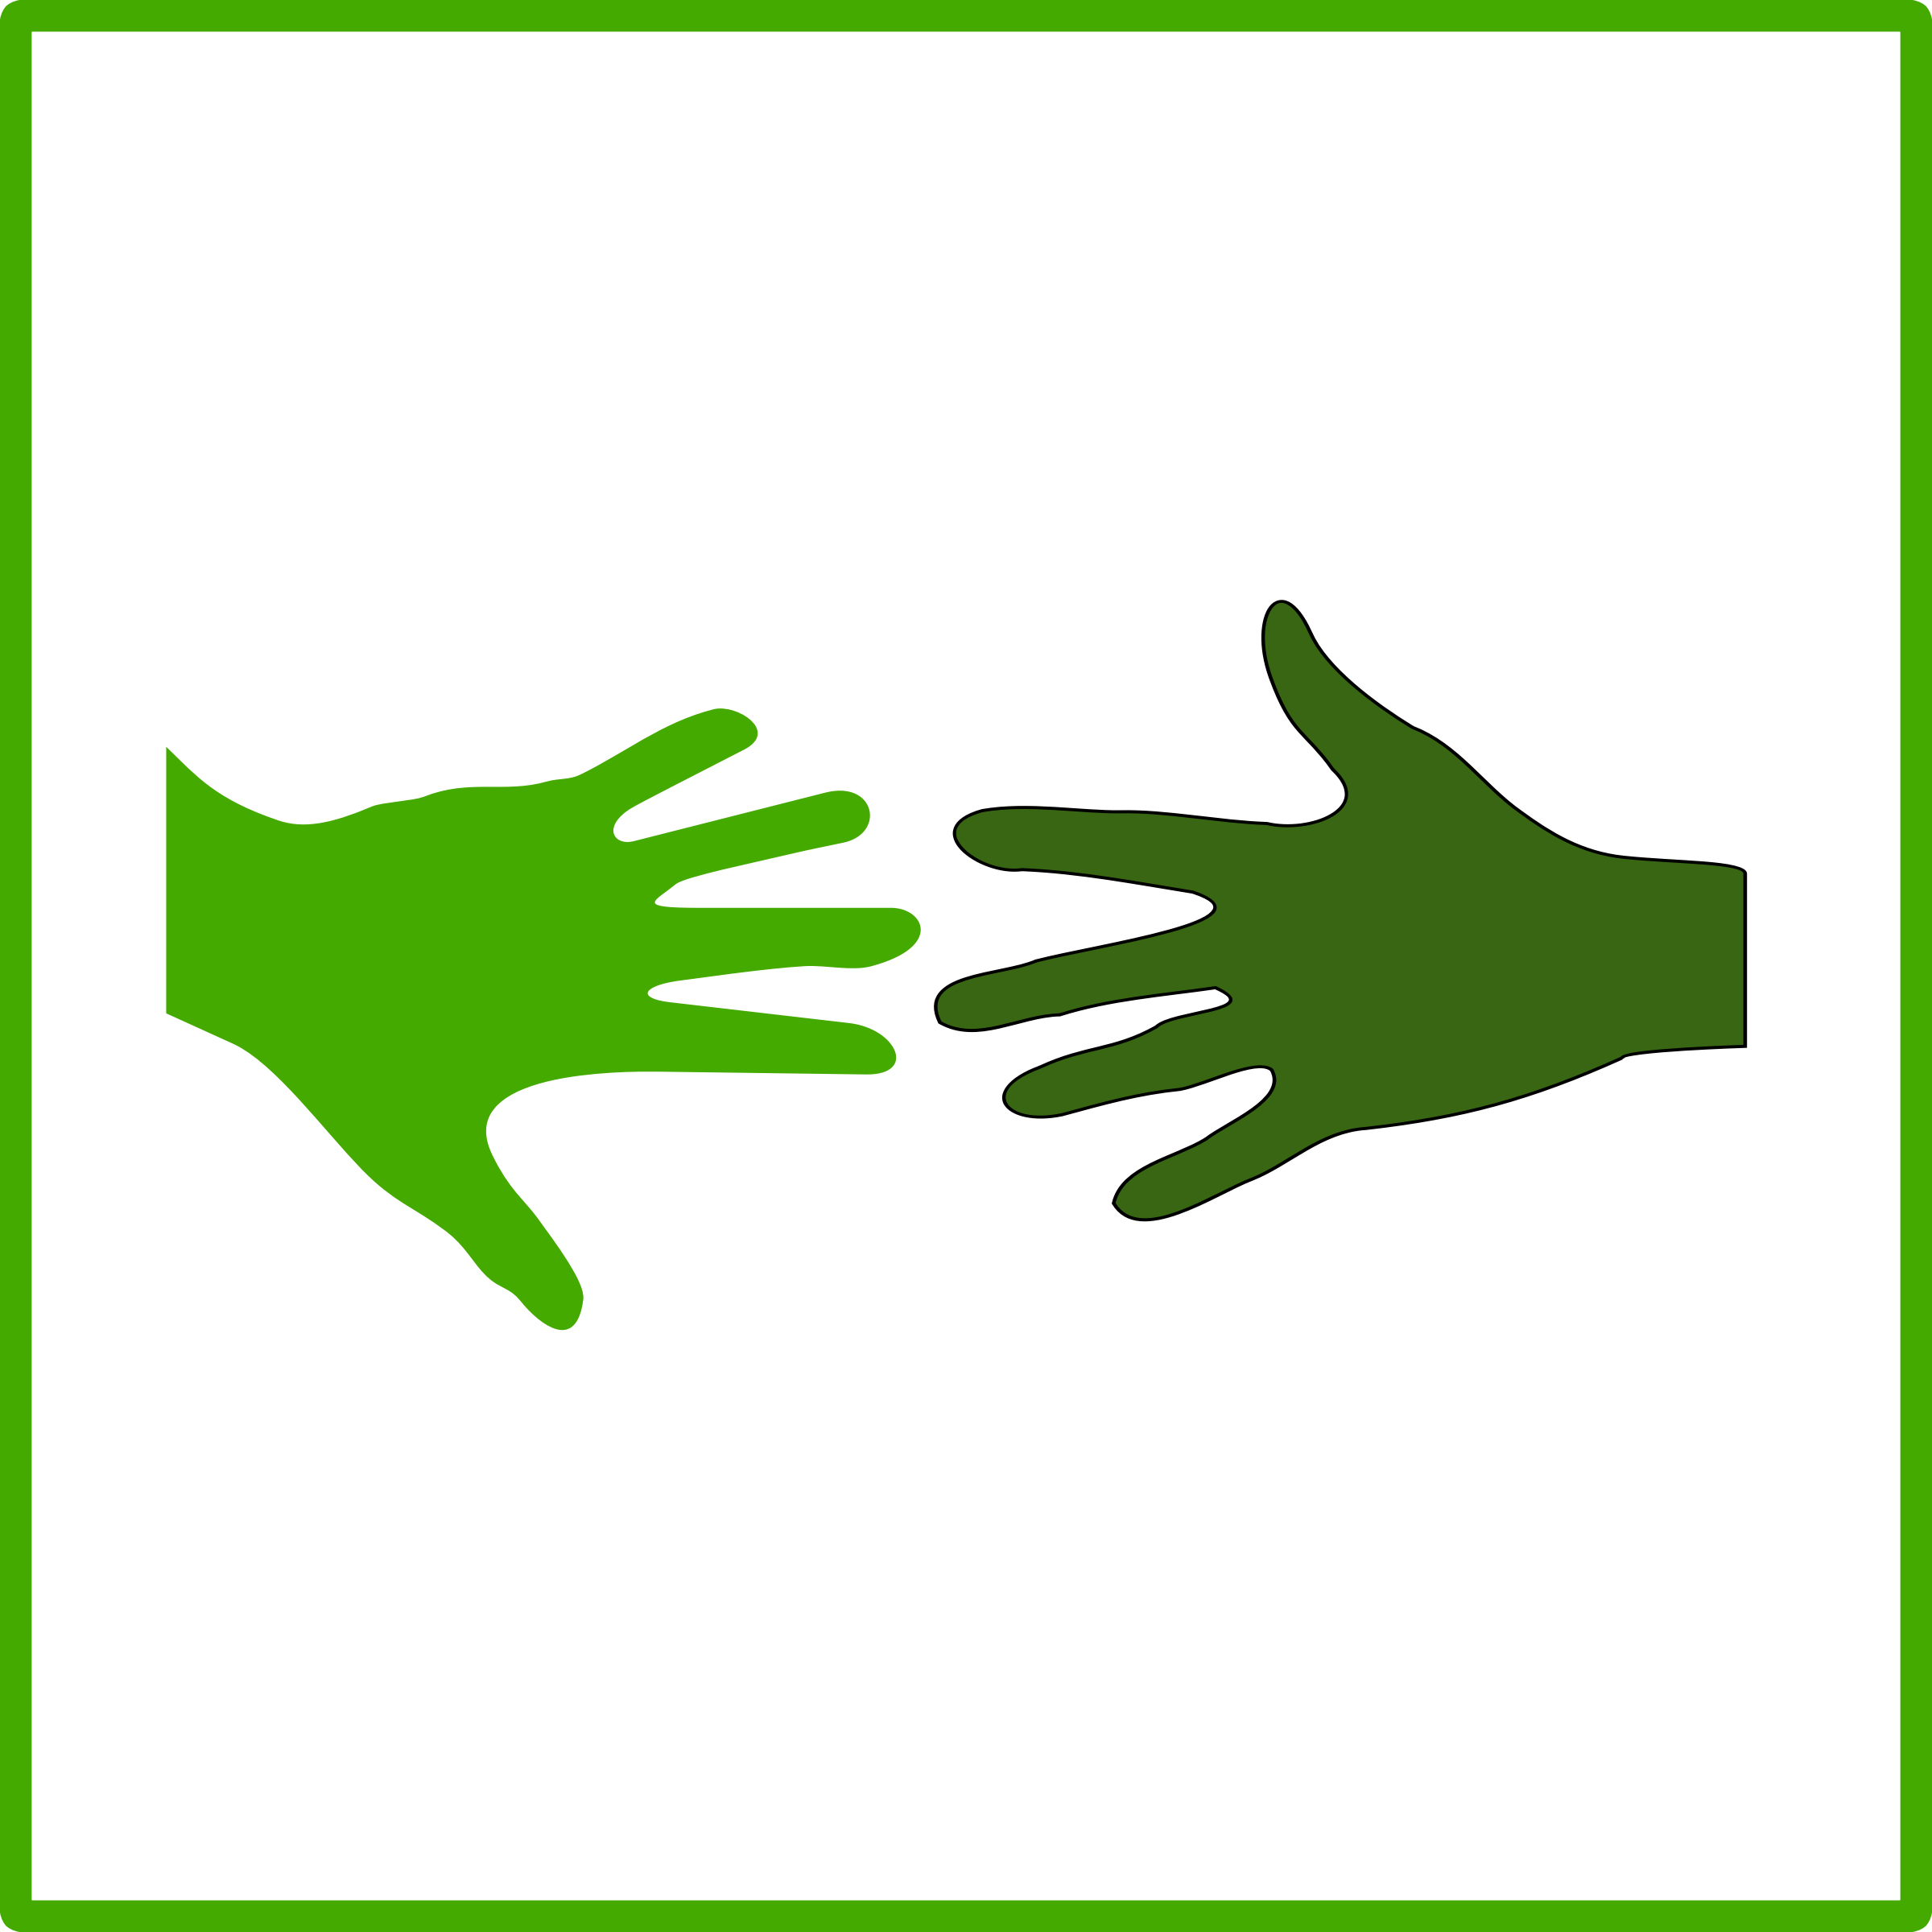 eco green solidarity icon by dominiquechappard